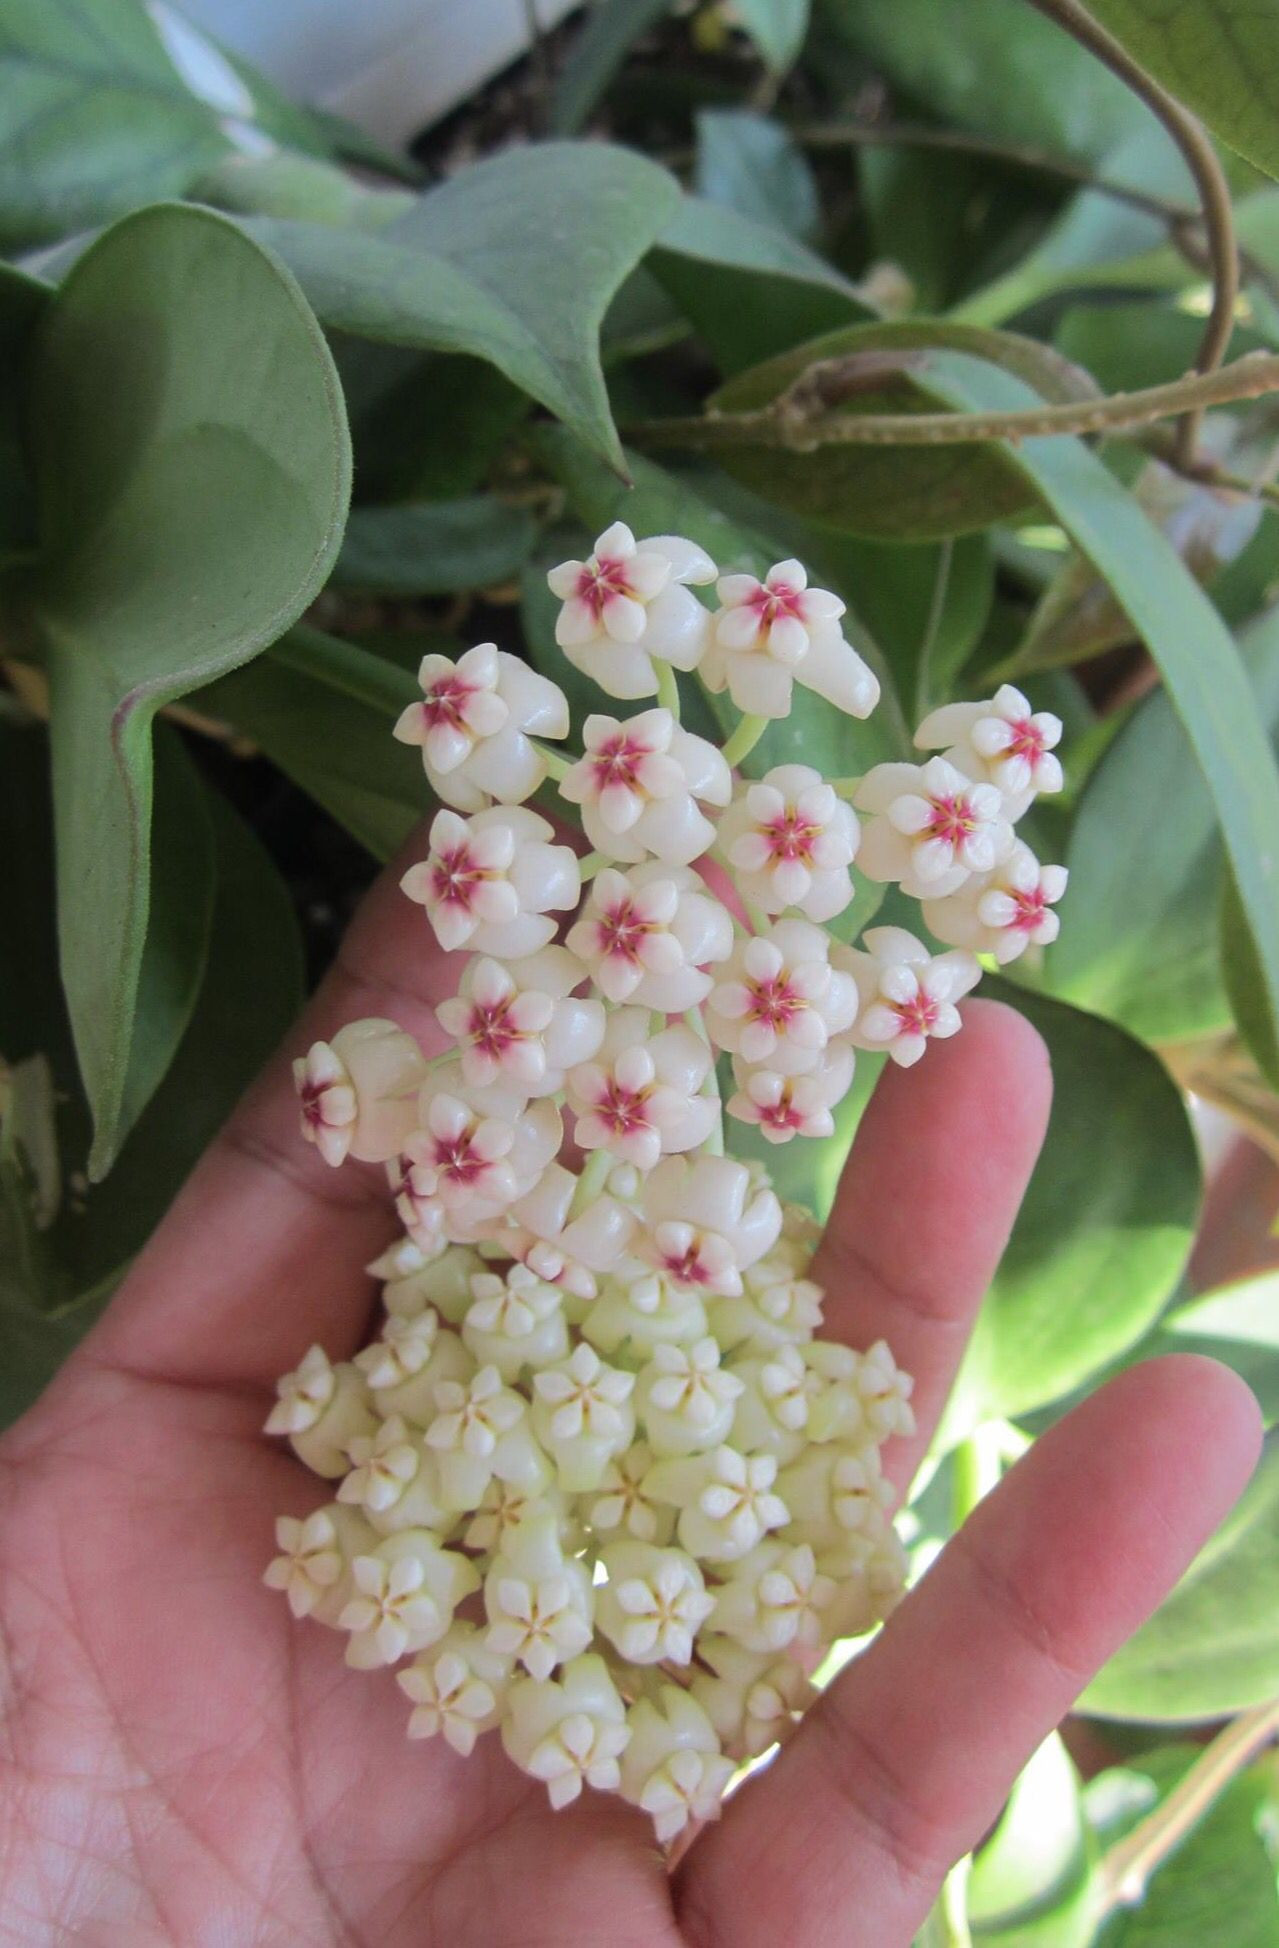 Hoya pachyclada red corona and white corona I m looking for pachyclada pink corona and for pachyclada variegated Does anyone in the EU have a cutting to